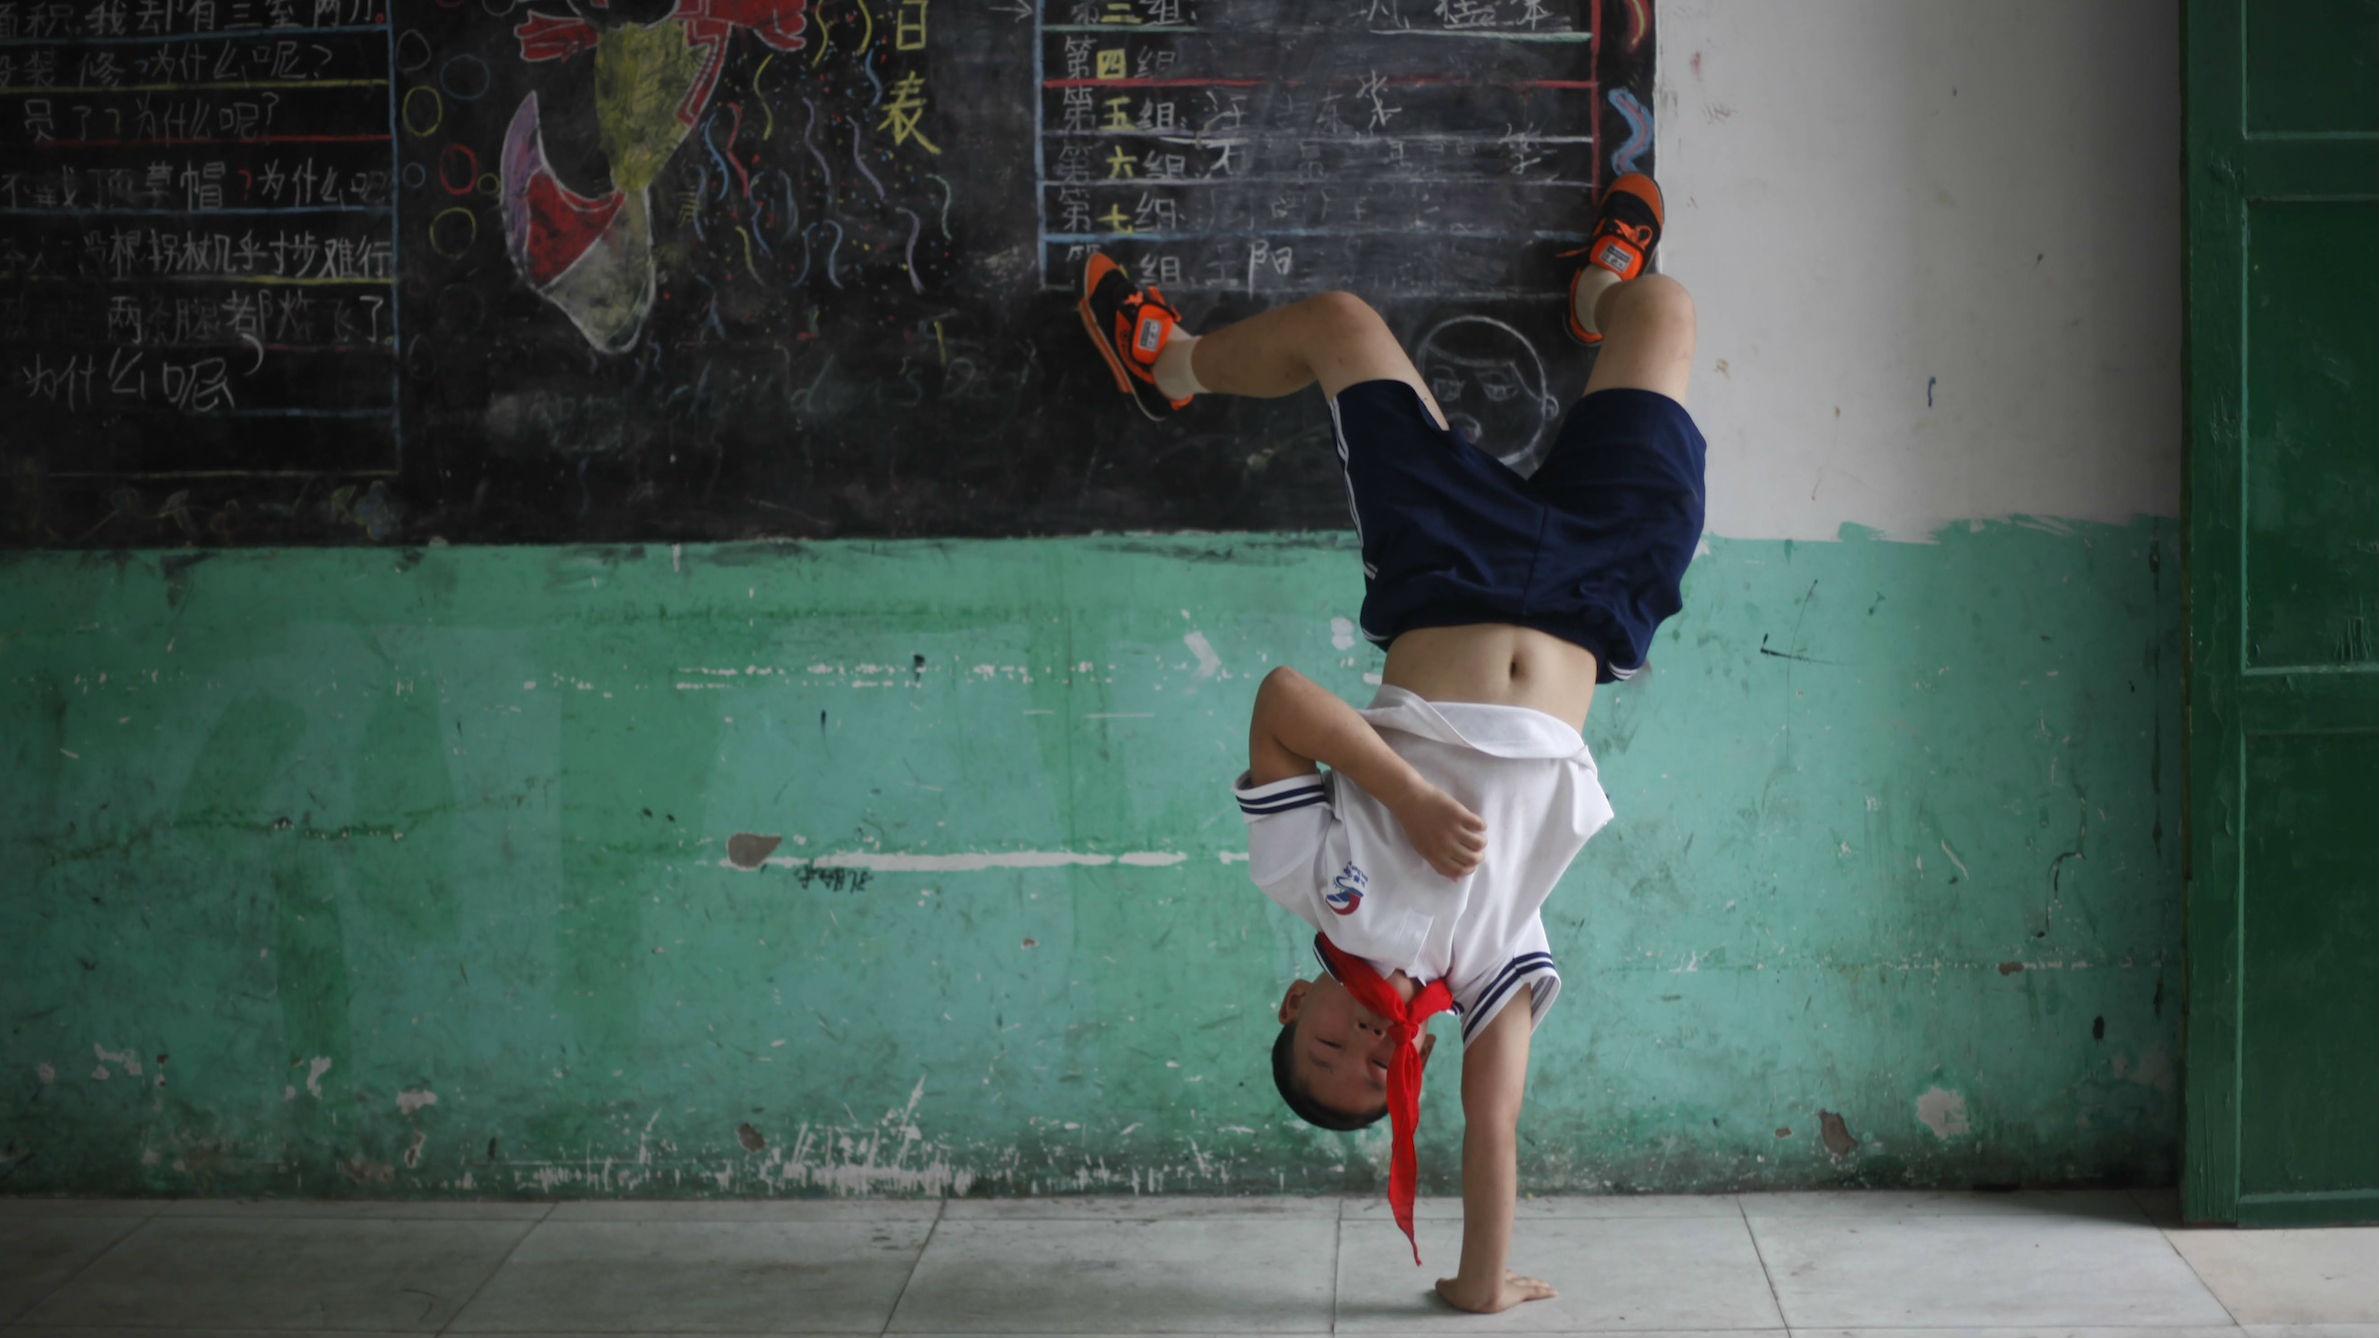 Chinese child doing a cartwheel